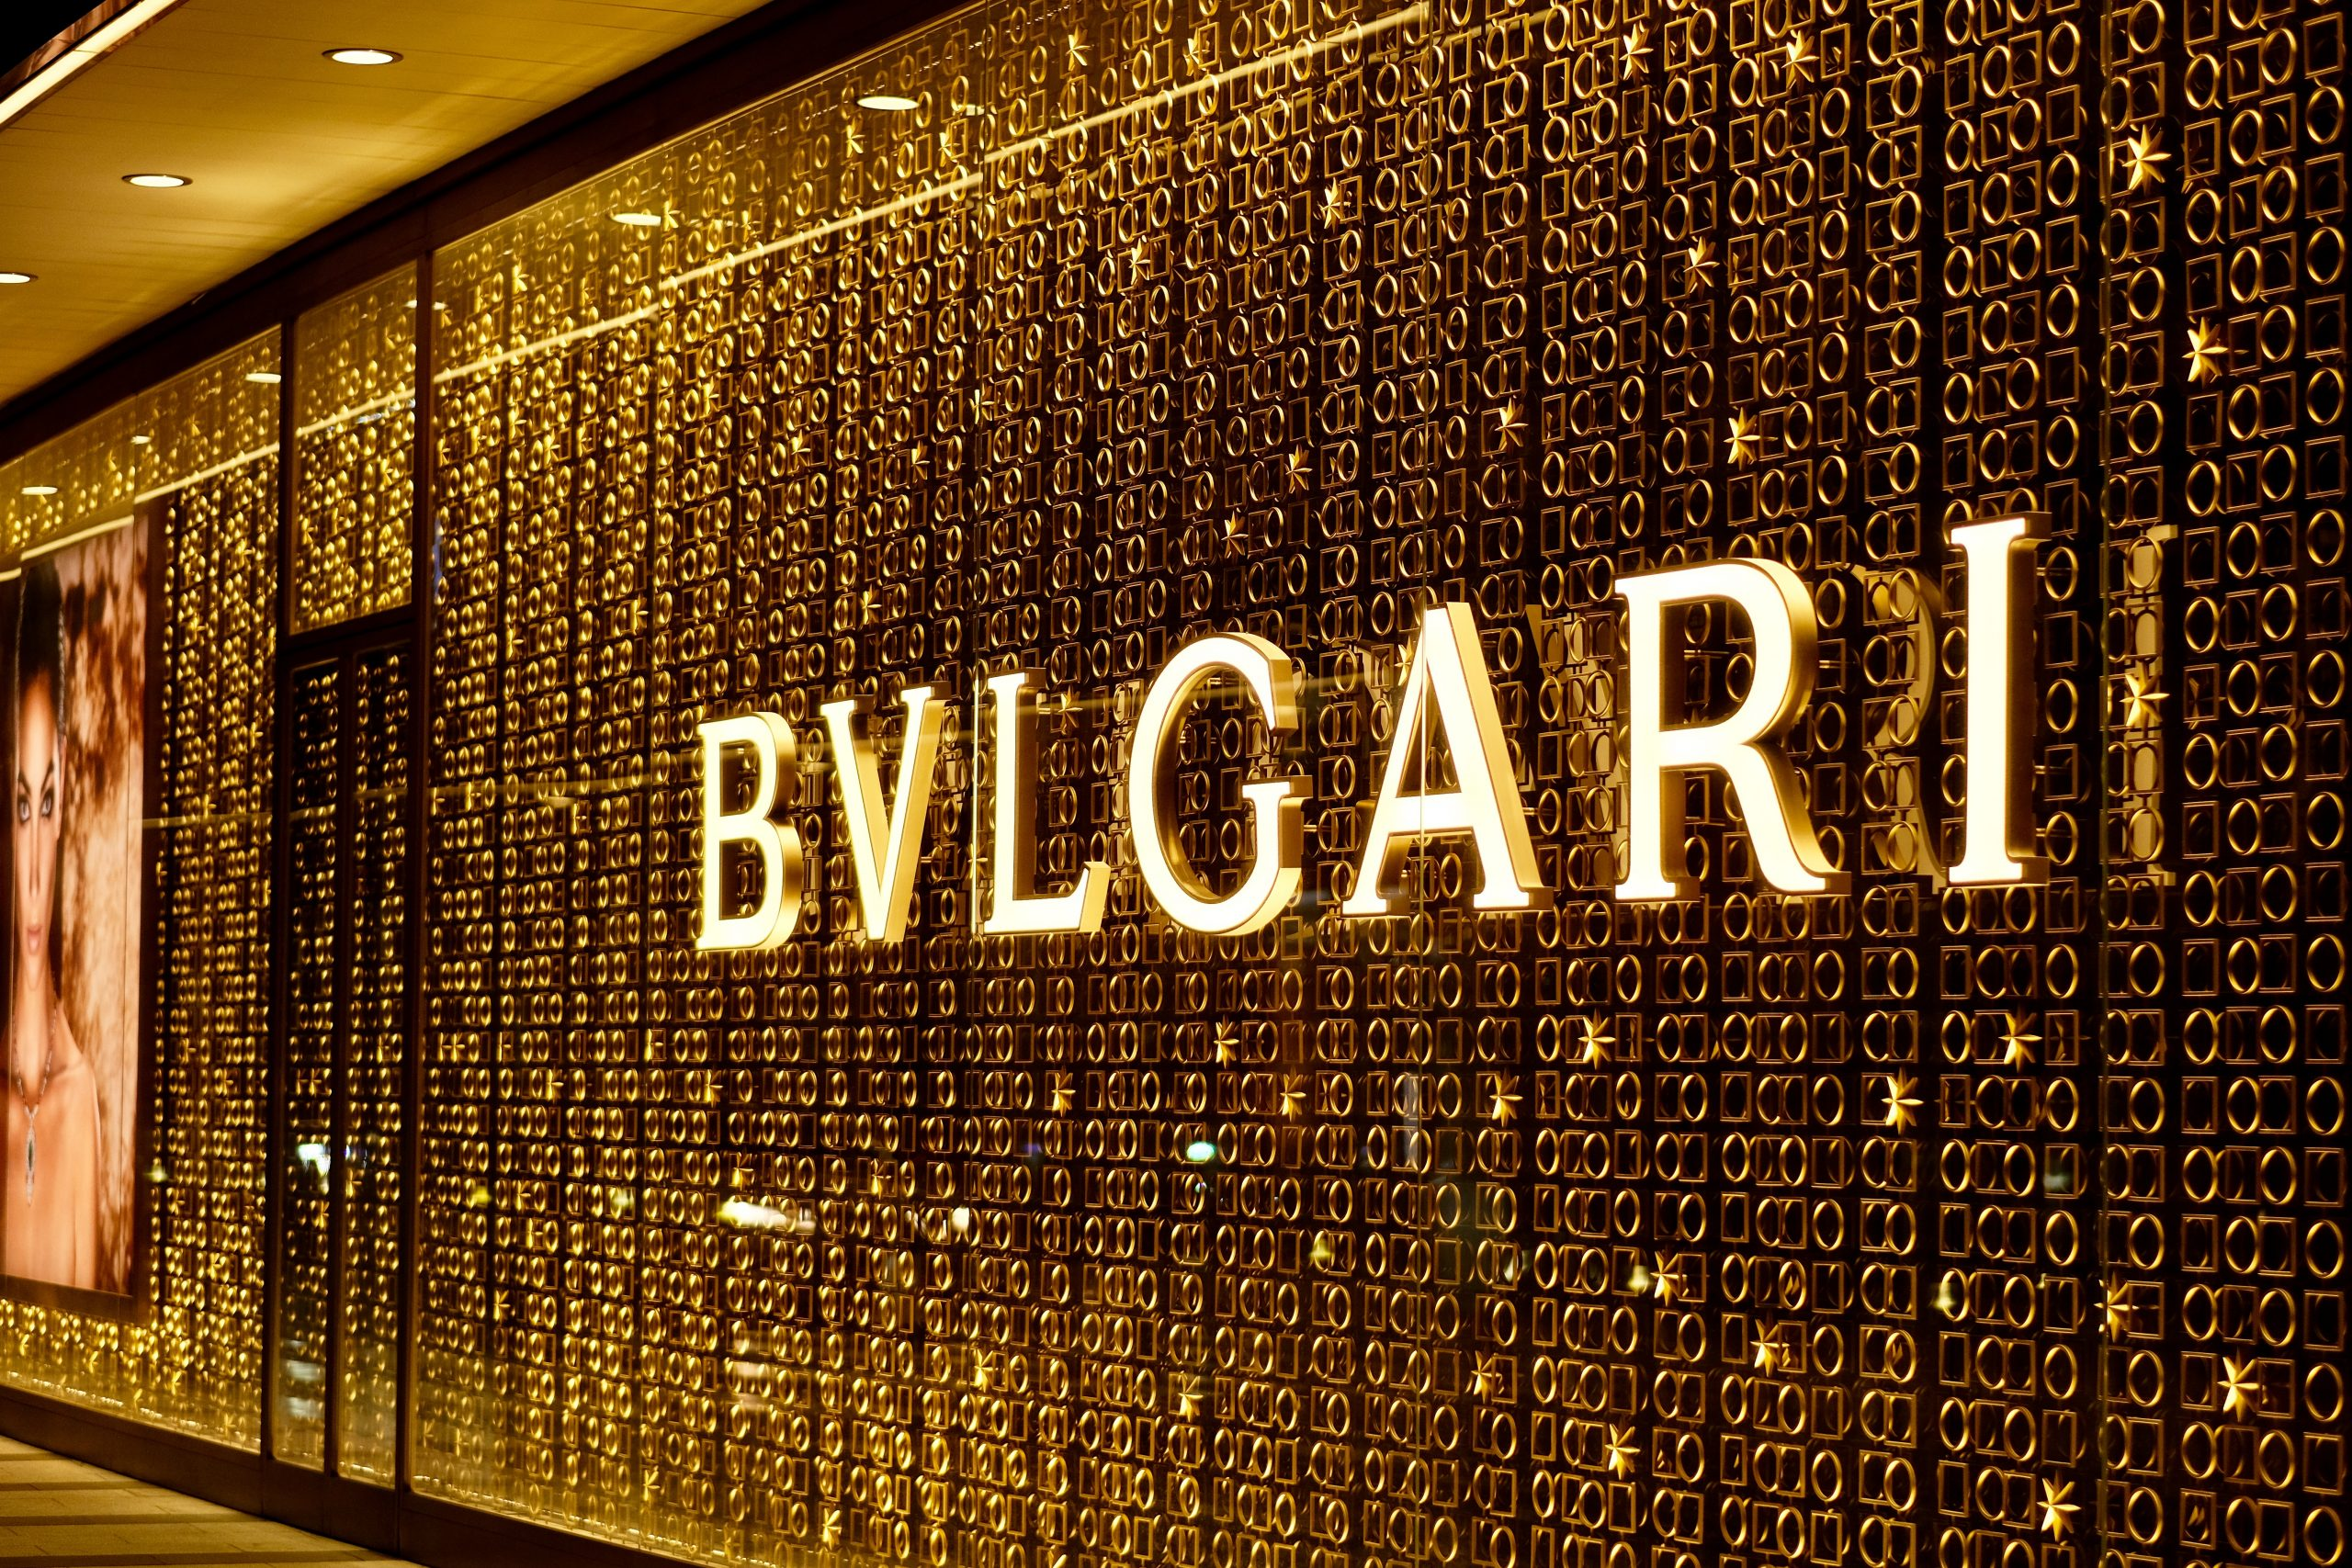 Bvlgari is Opening its First US hotel location in Miami